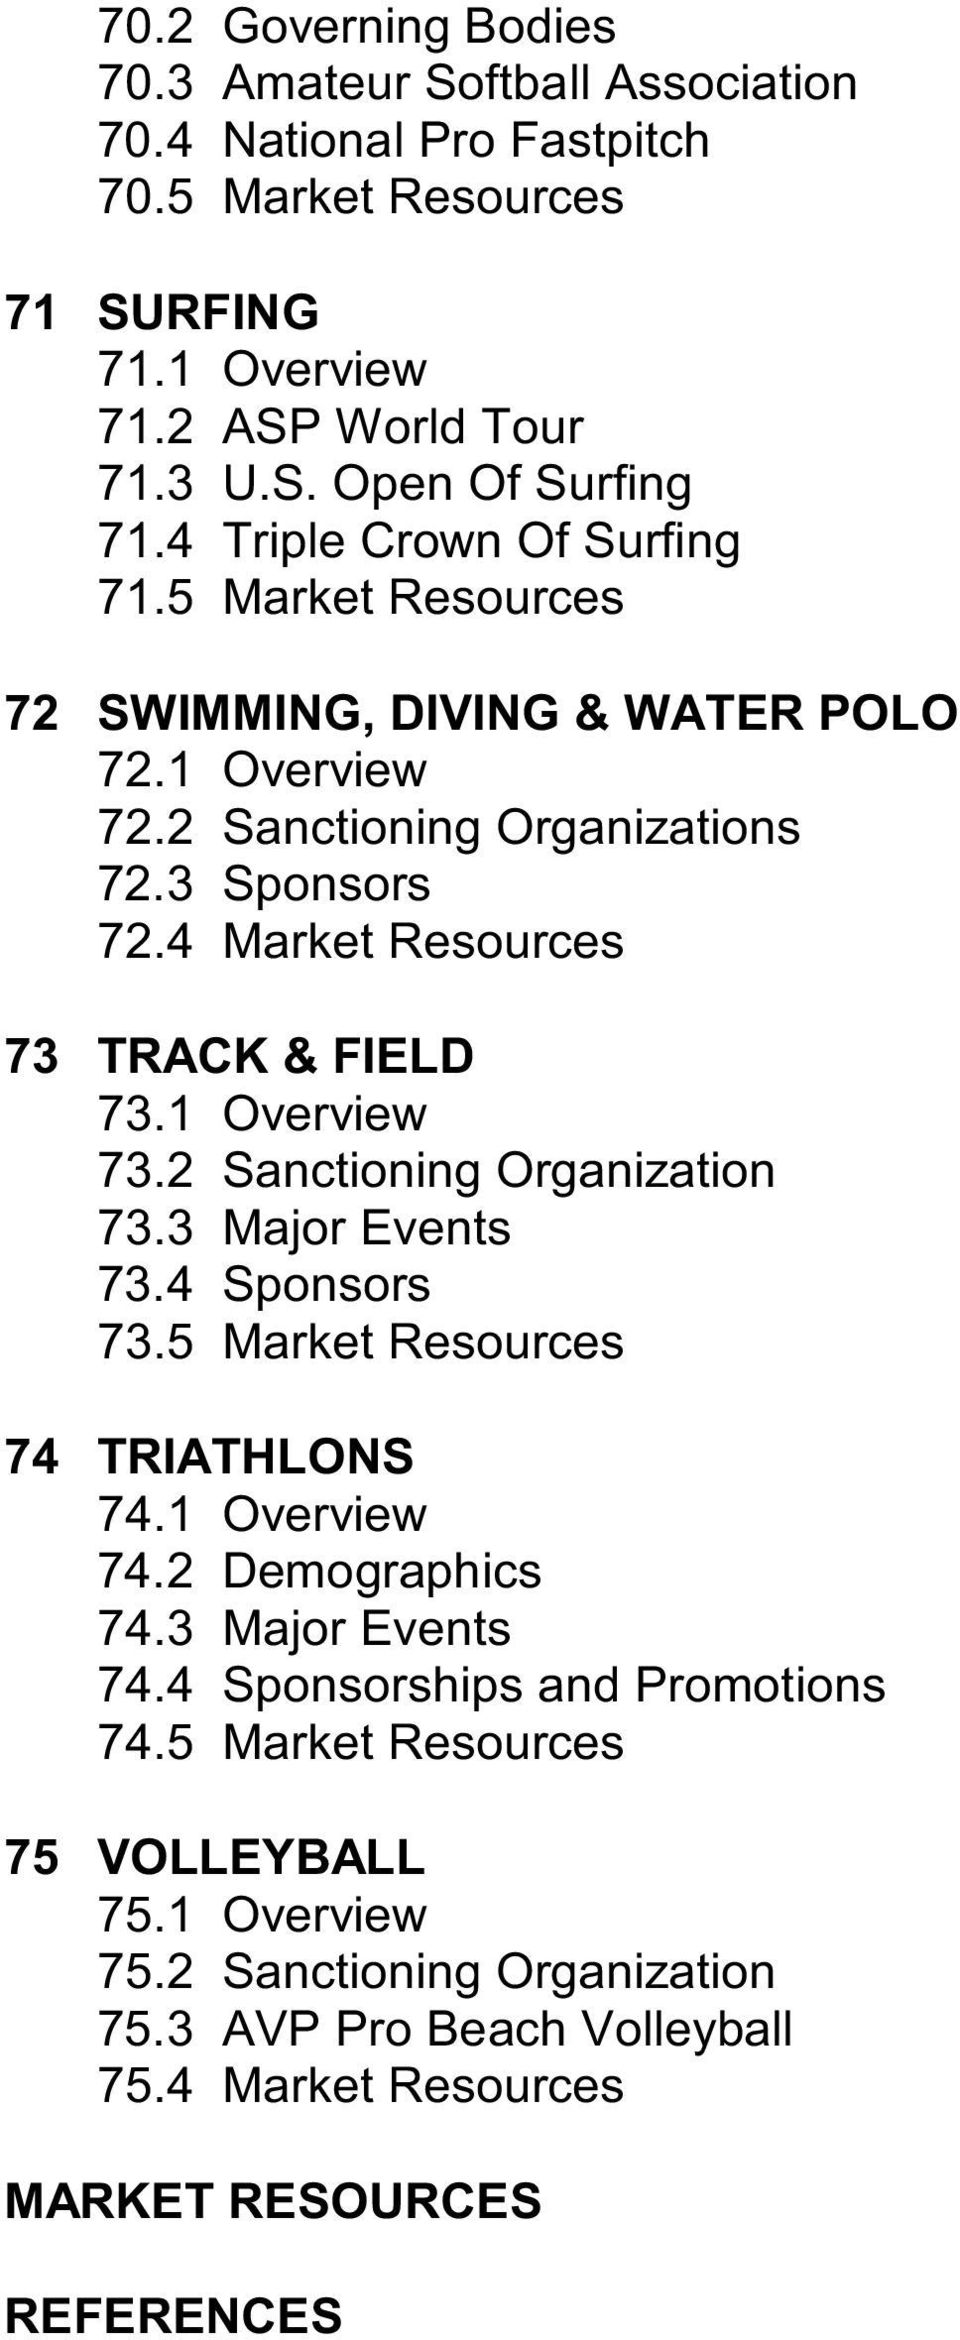 4 Market Resources 73 TRACK & FIELD 73.1 Overview 73.2 Sanctioning Organization 73.3 Major Events 73.4 Sponsors 73.5 Market Resources 74 TRIATHLONS 74.1 Overview 74.